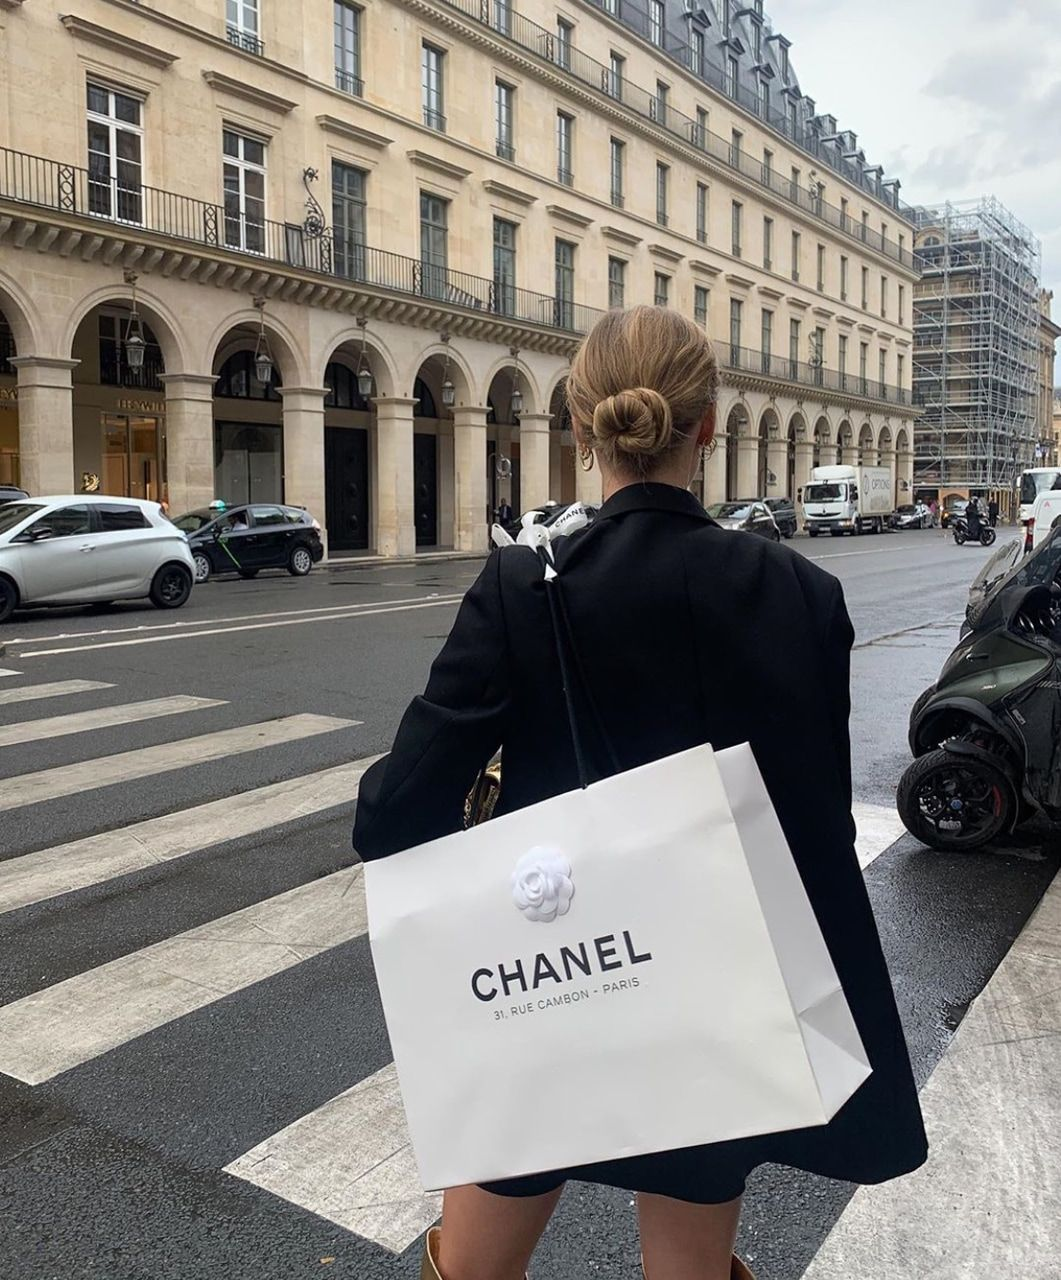 Pin By Clapham Michell On Fashion In 2020 Future Lifestyle Classy Aesthetic Paris